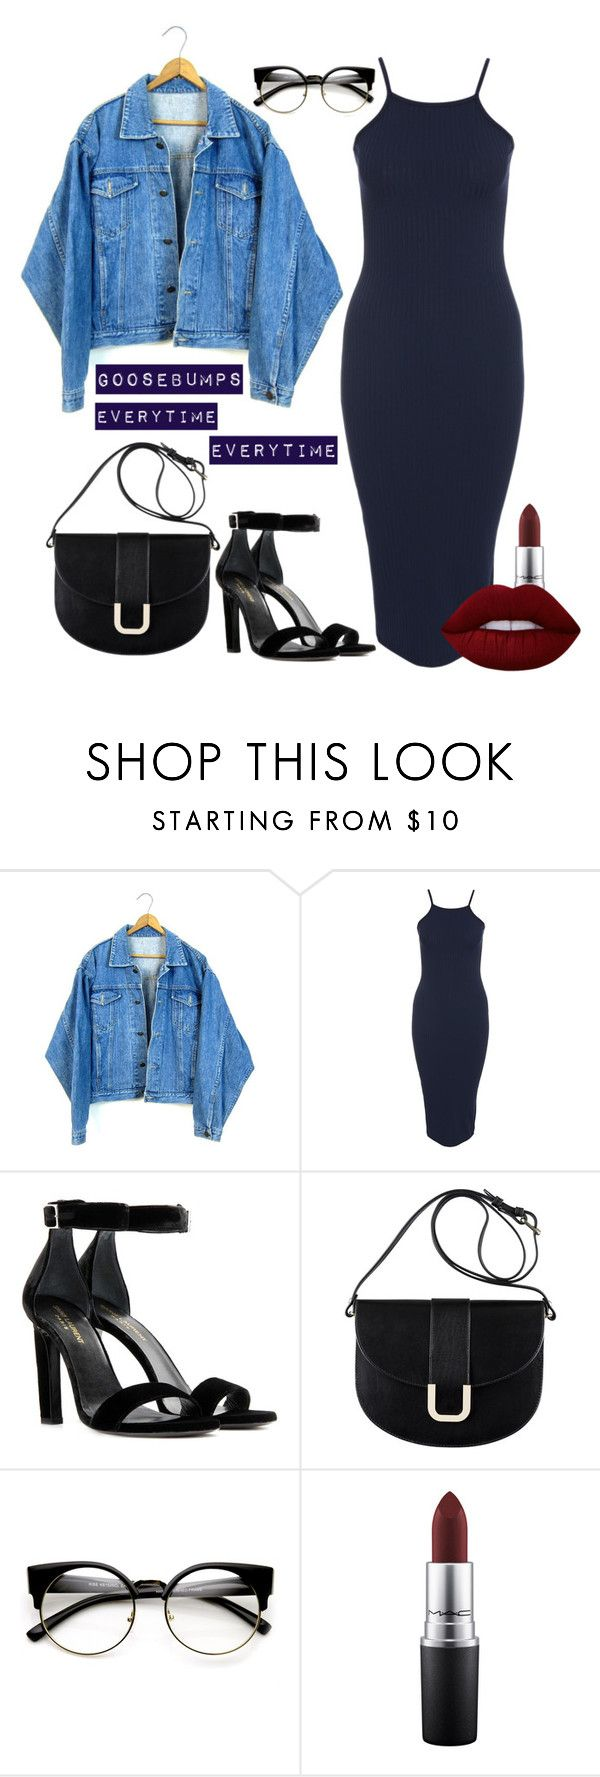 """""""Goosebumps """" by saraprifti on Polyvore featuring Club L, Yves Saint Laurent, A.P.C., MAC Cosmetics and Lime Crime"""